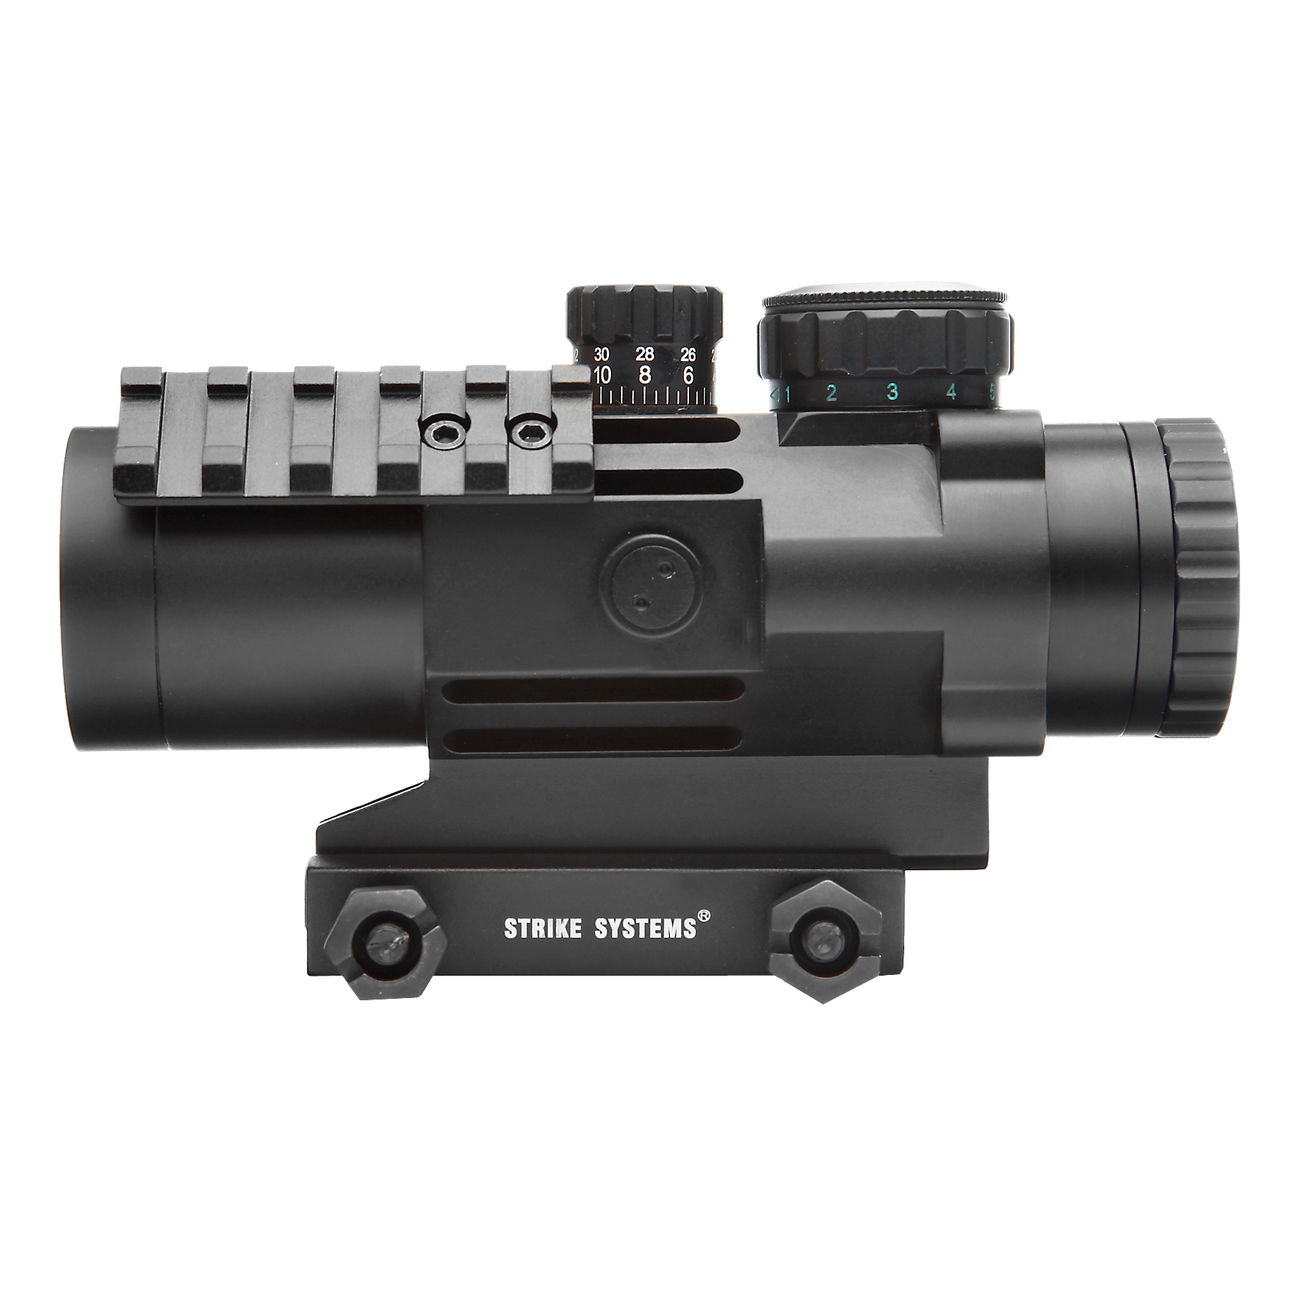 Strike Systems Tactical Red-/Green-Dot Scope mit Zusatzschienen 3x32mm schwarz 2